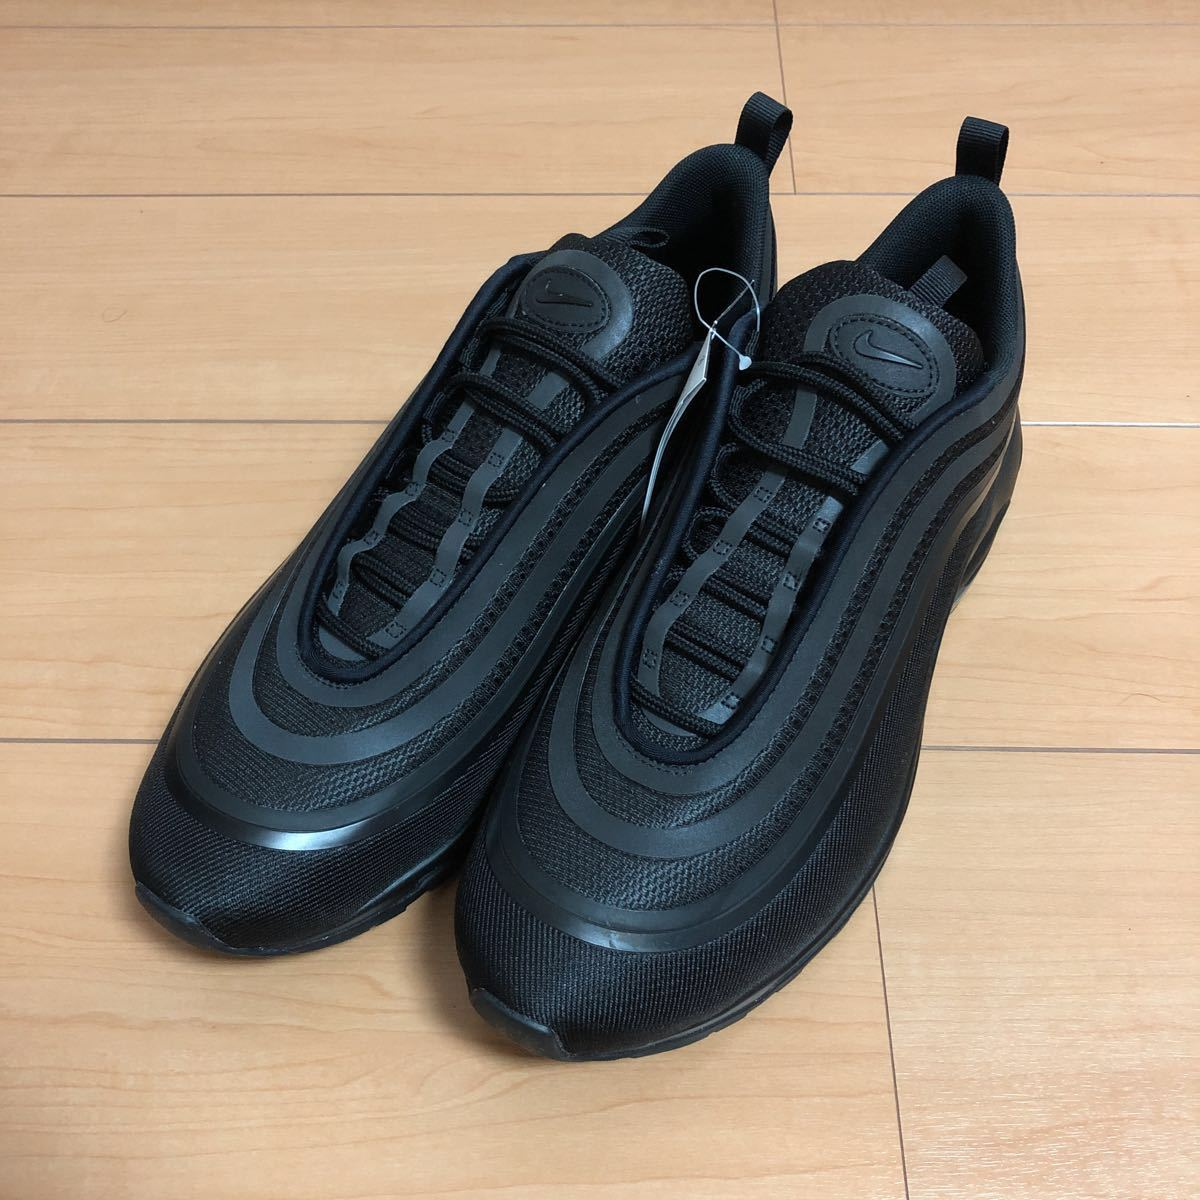 Nike Air Max 97 Sneaker Urban Outfitters